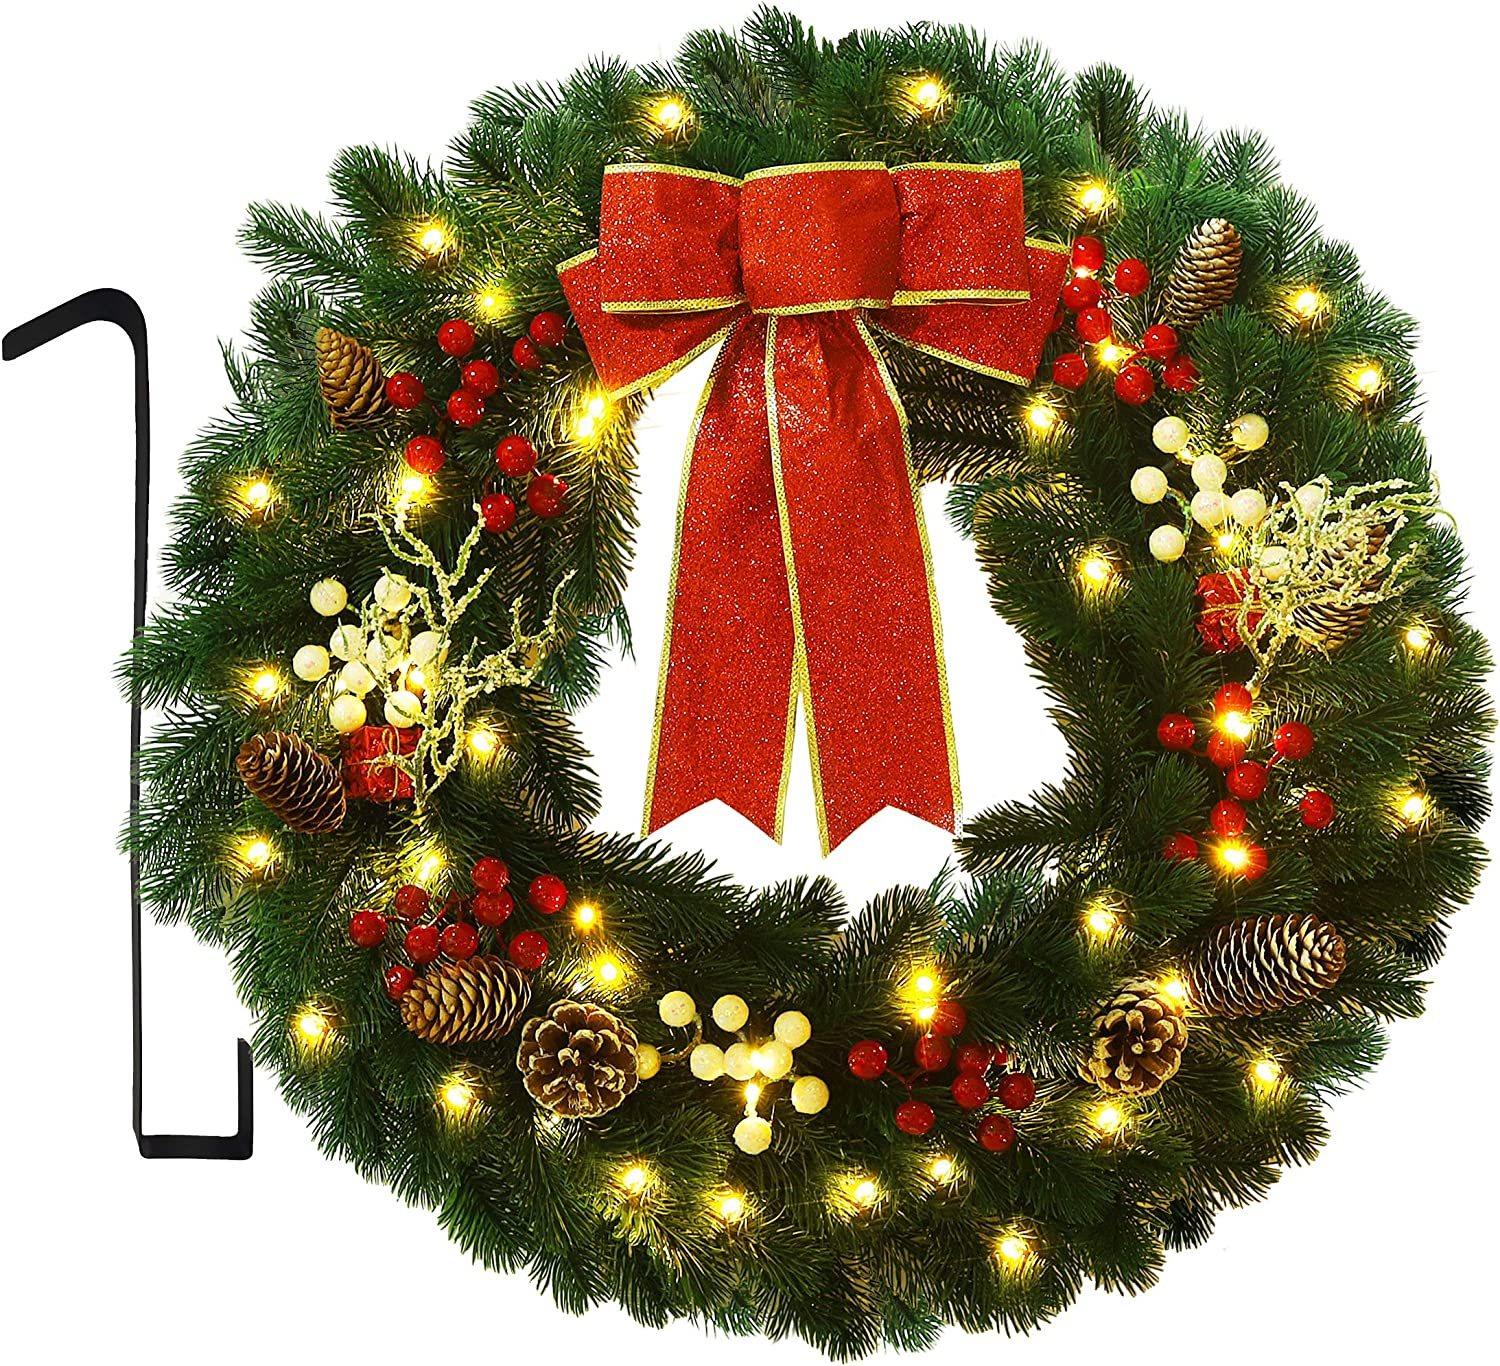 ATDAWN 24 Inch Christmas Wreath, Outdoor Lighted Christmas Wreath for Front Door, Xmas Wreath for Holiday Christmas Party Decorations